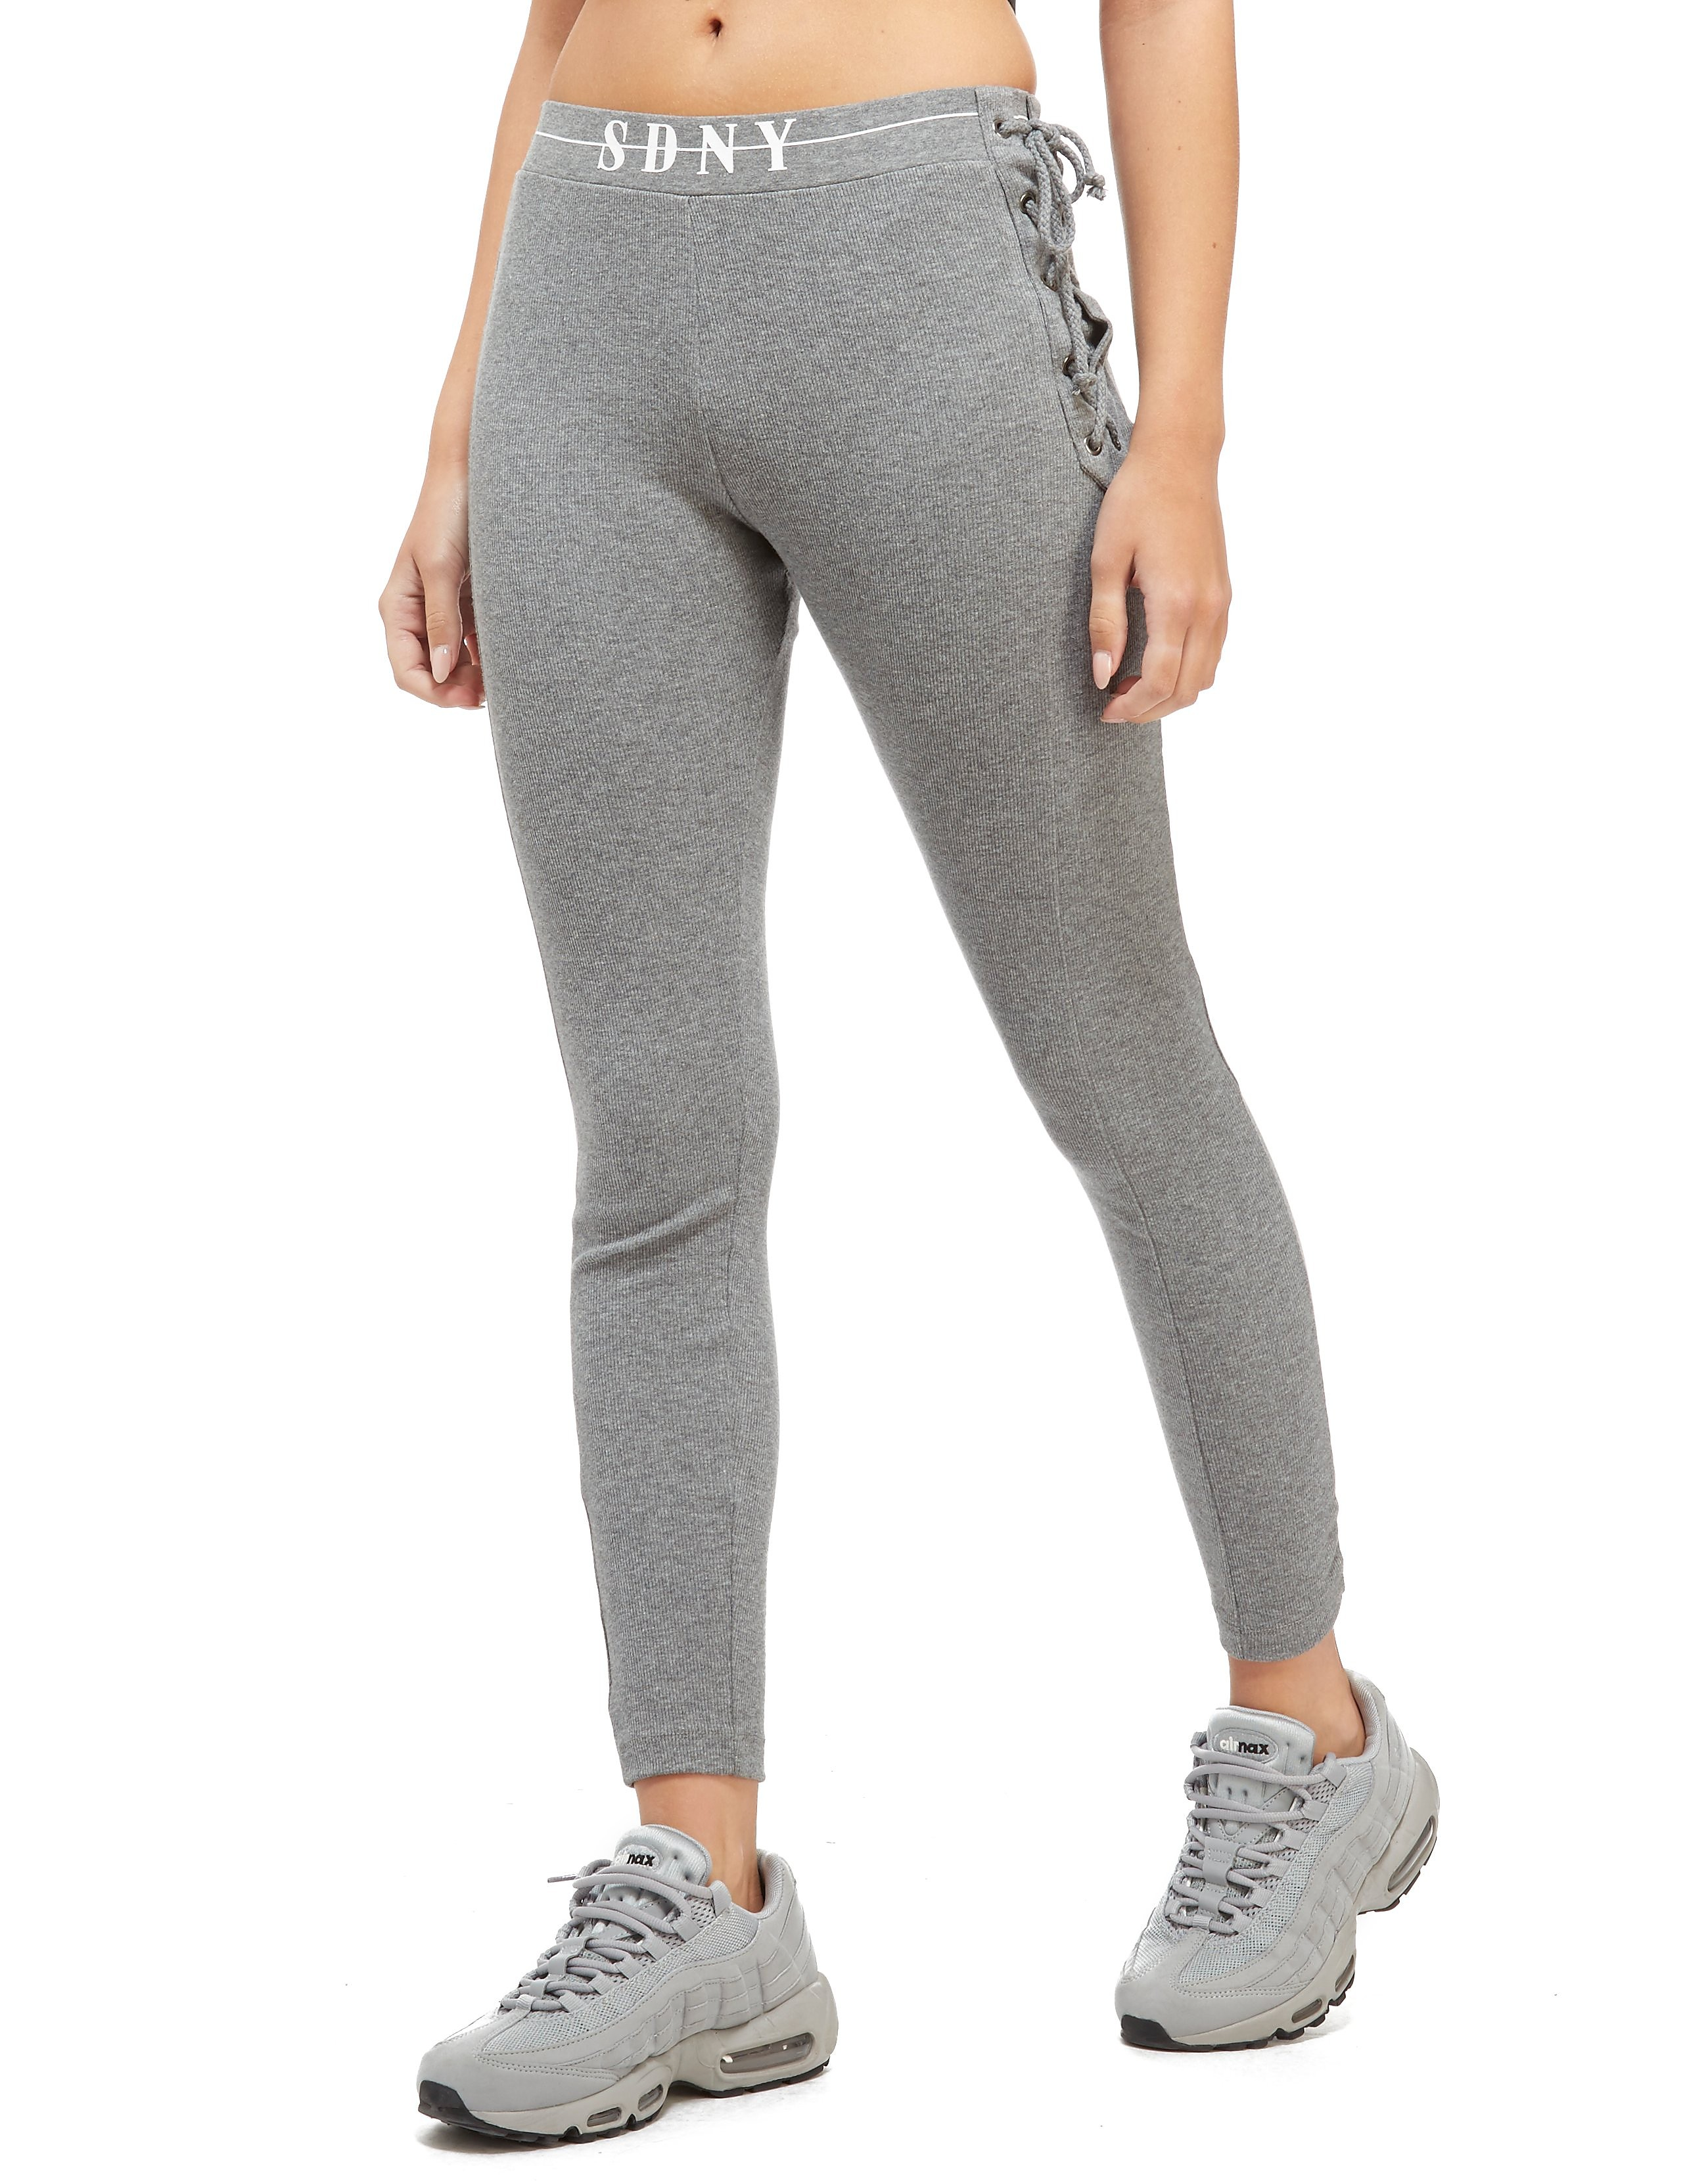 Supply & Demand Lace Up Leggings